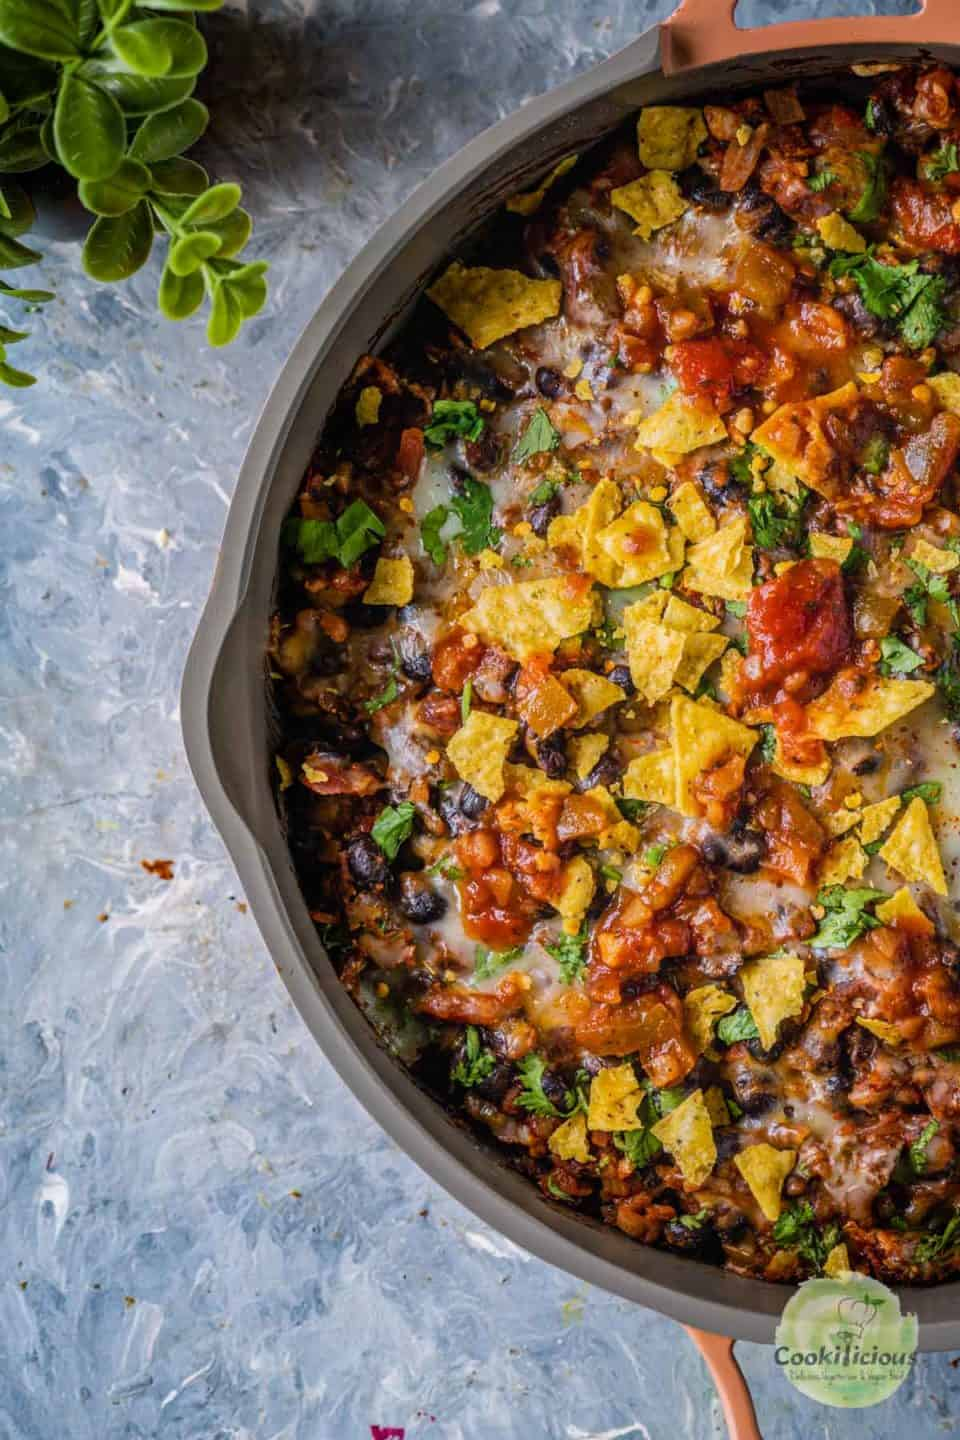 view of half a skillet filled with Vegan Mexican gnocchi casserole